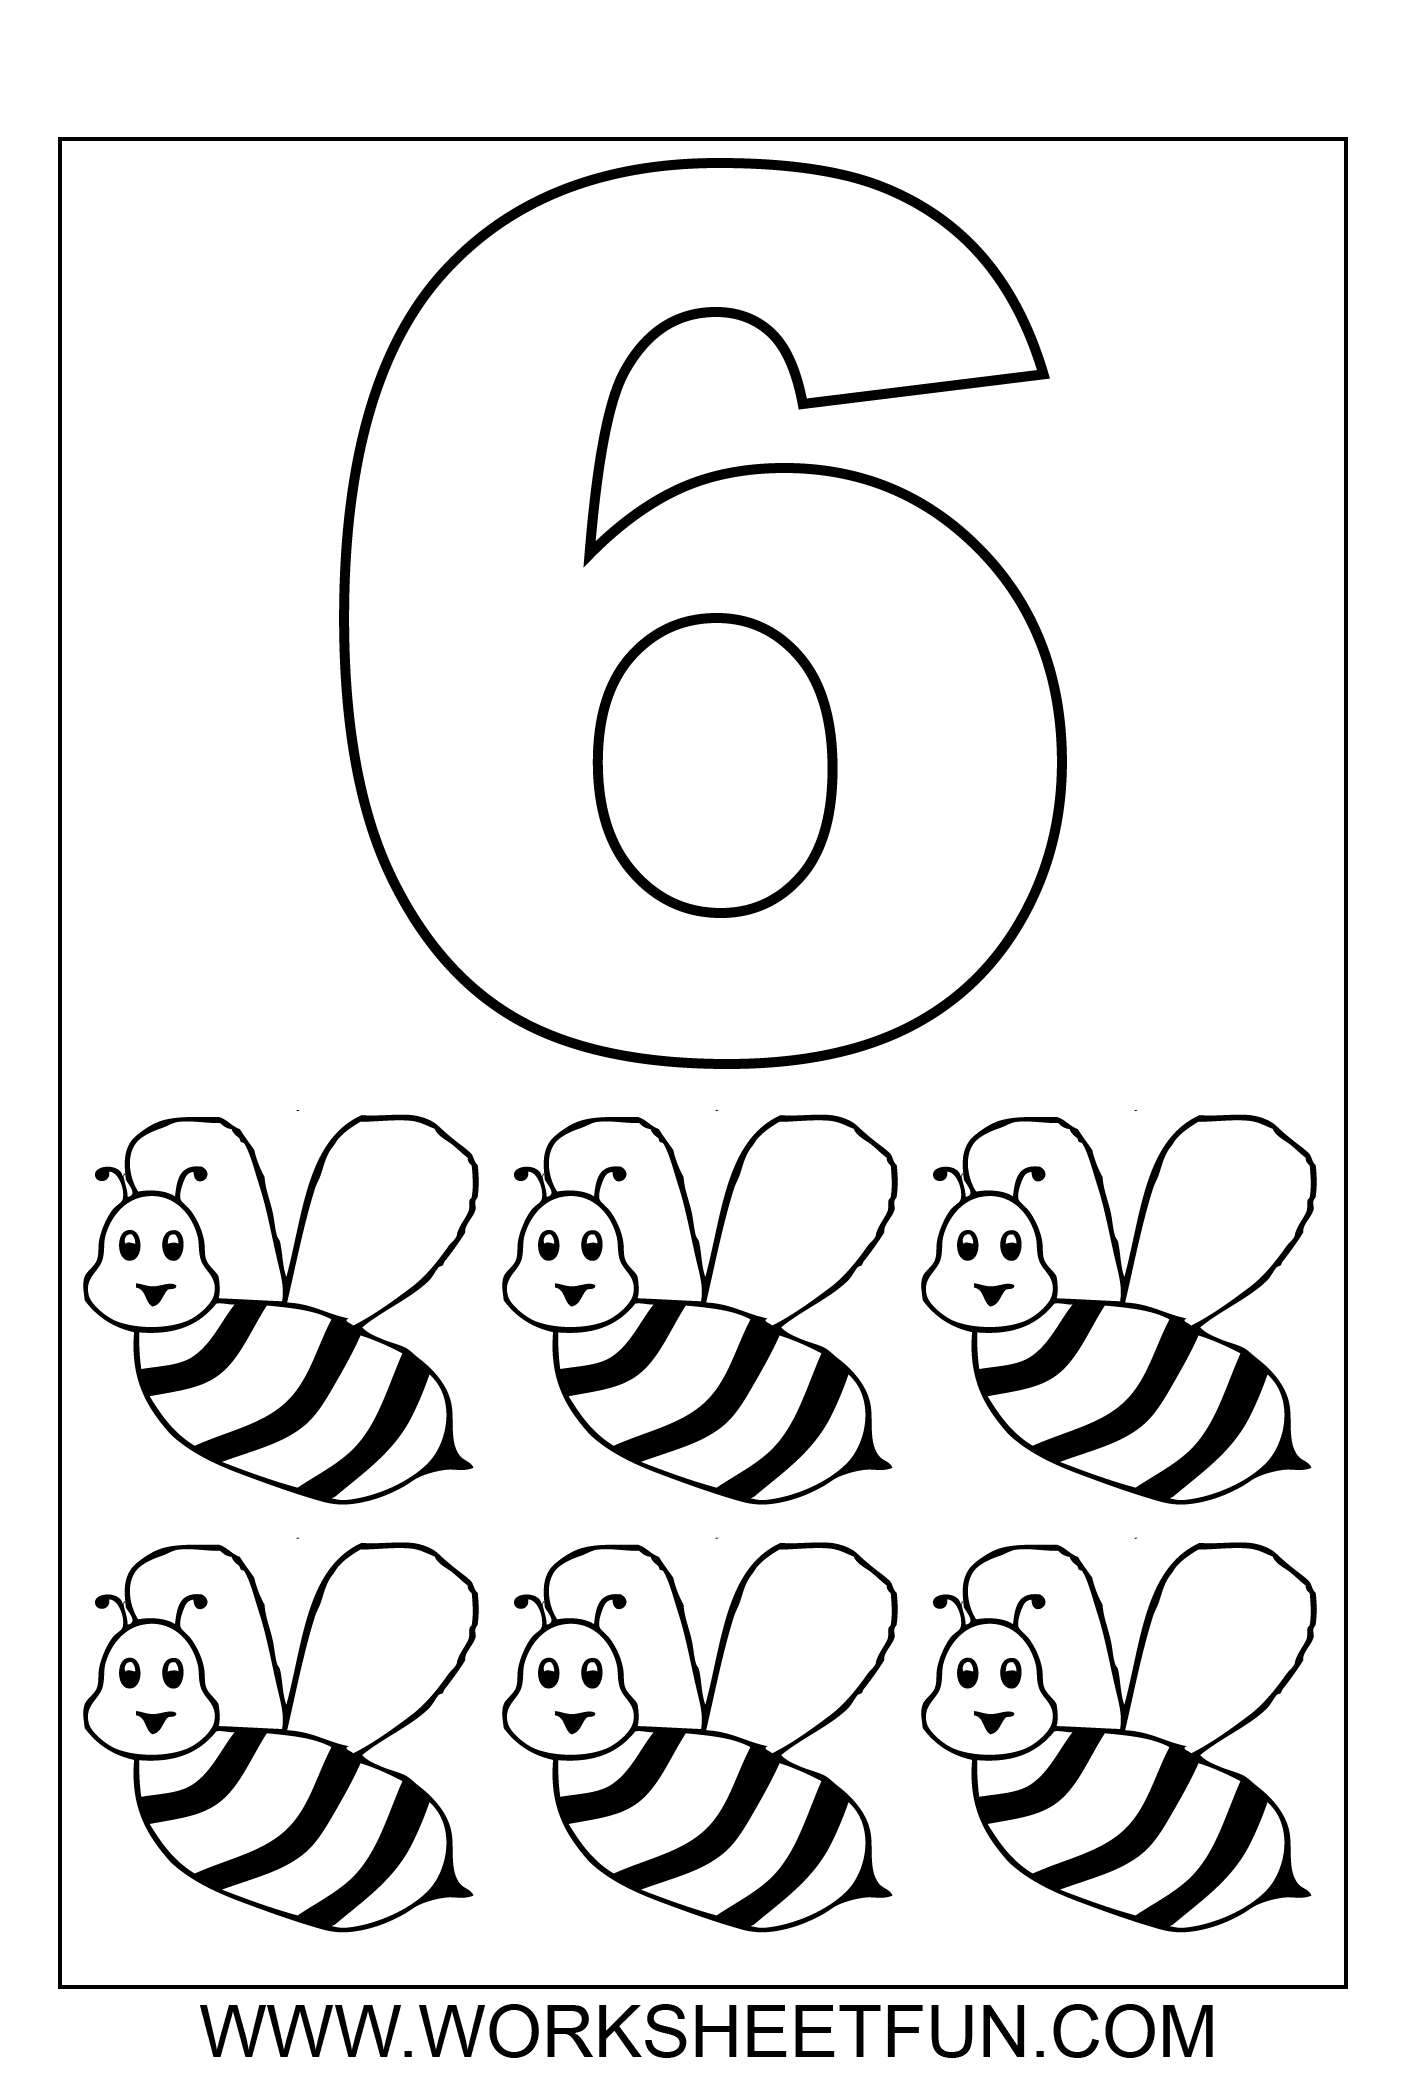 image relating to Printable Number 5 identify Variety 5 Coloring Webpage at  Free of charge for